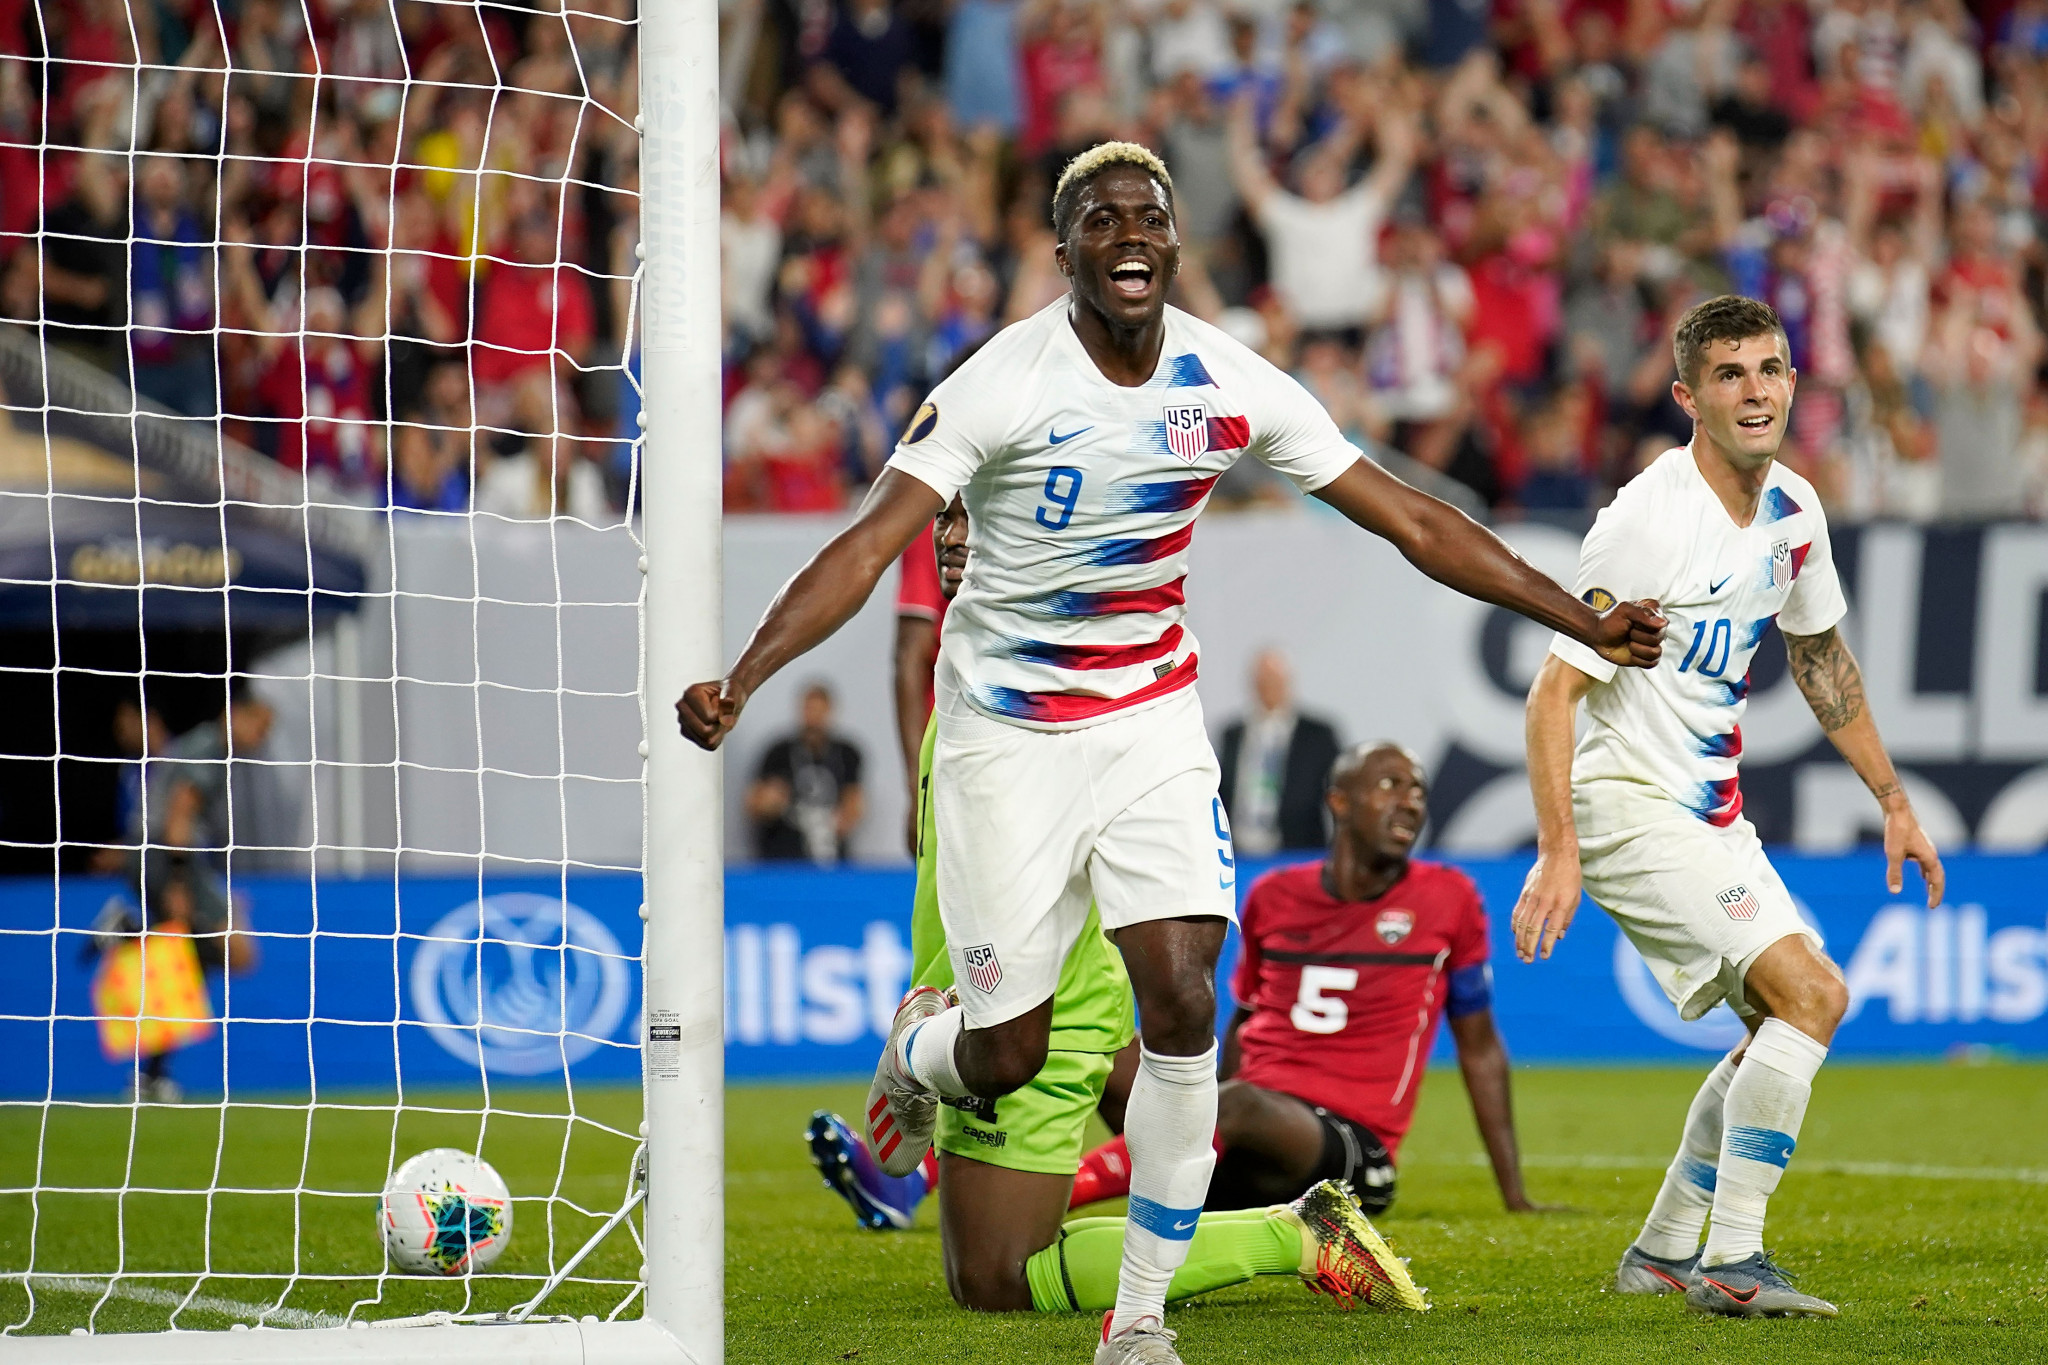 United States and Panama reach Gold Cup quarter finals with high scoring victories